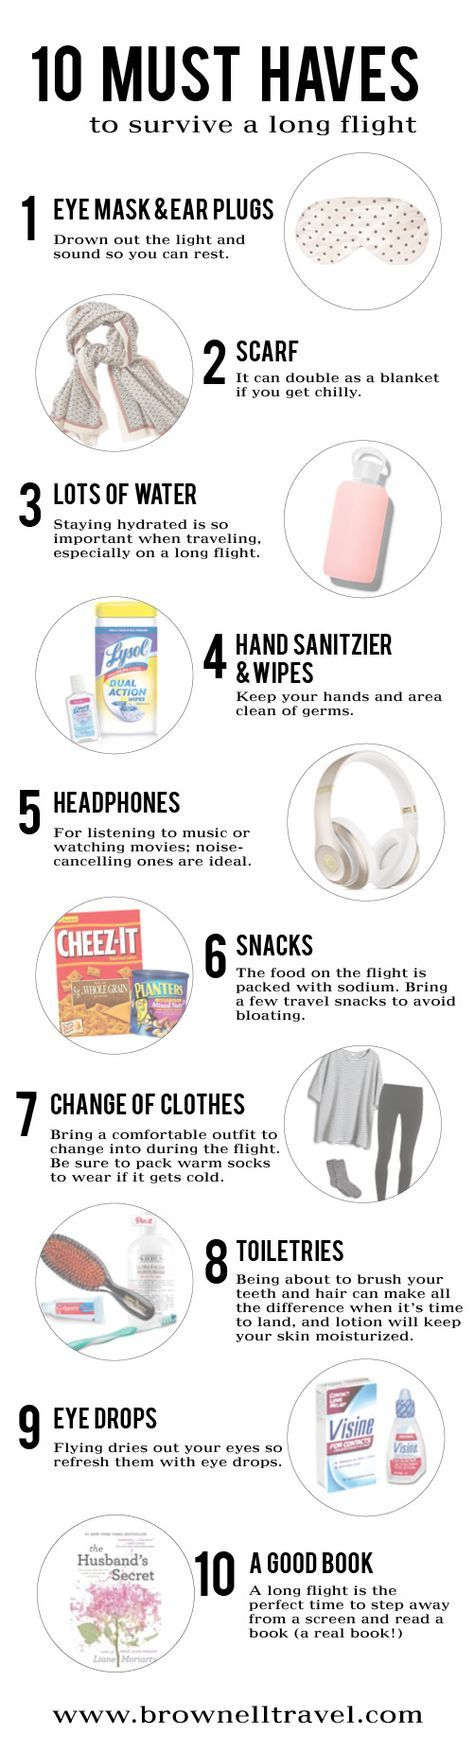 Don't leave home without these 10 must haves!